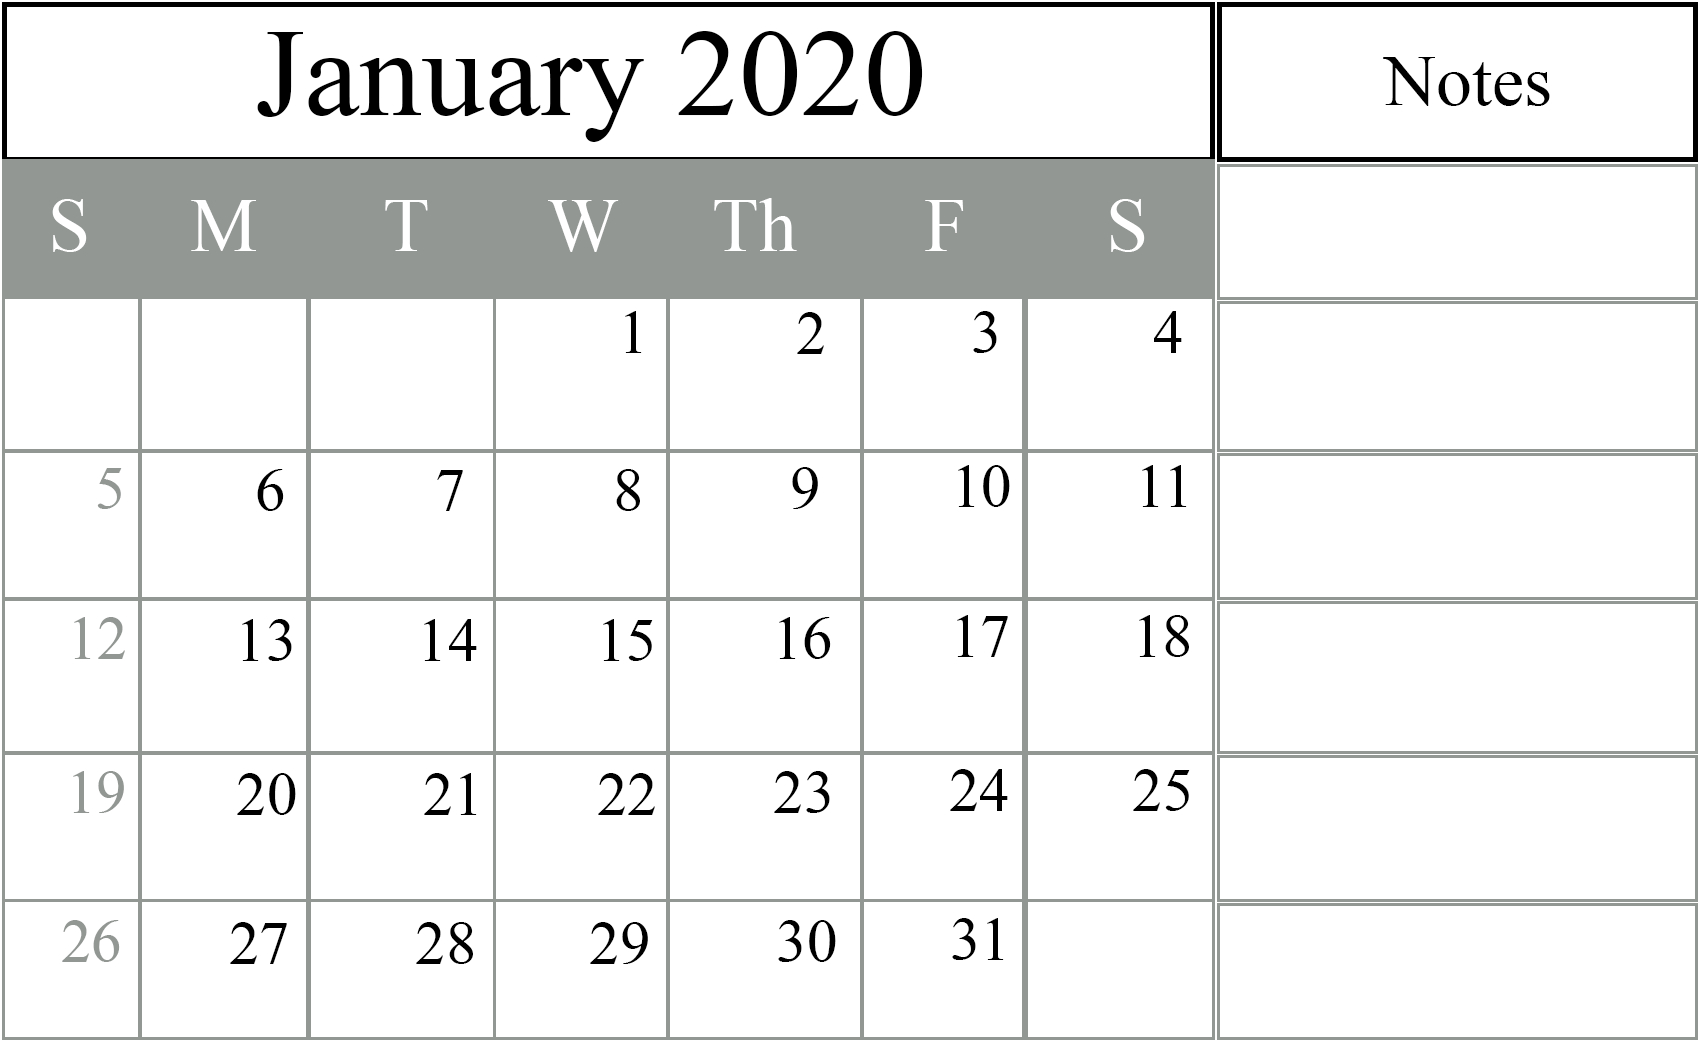 Free January 2020 Calendar Templates {Pdf, Excel, Word} | Printable throughout 2020 Calender With Space To Write